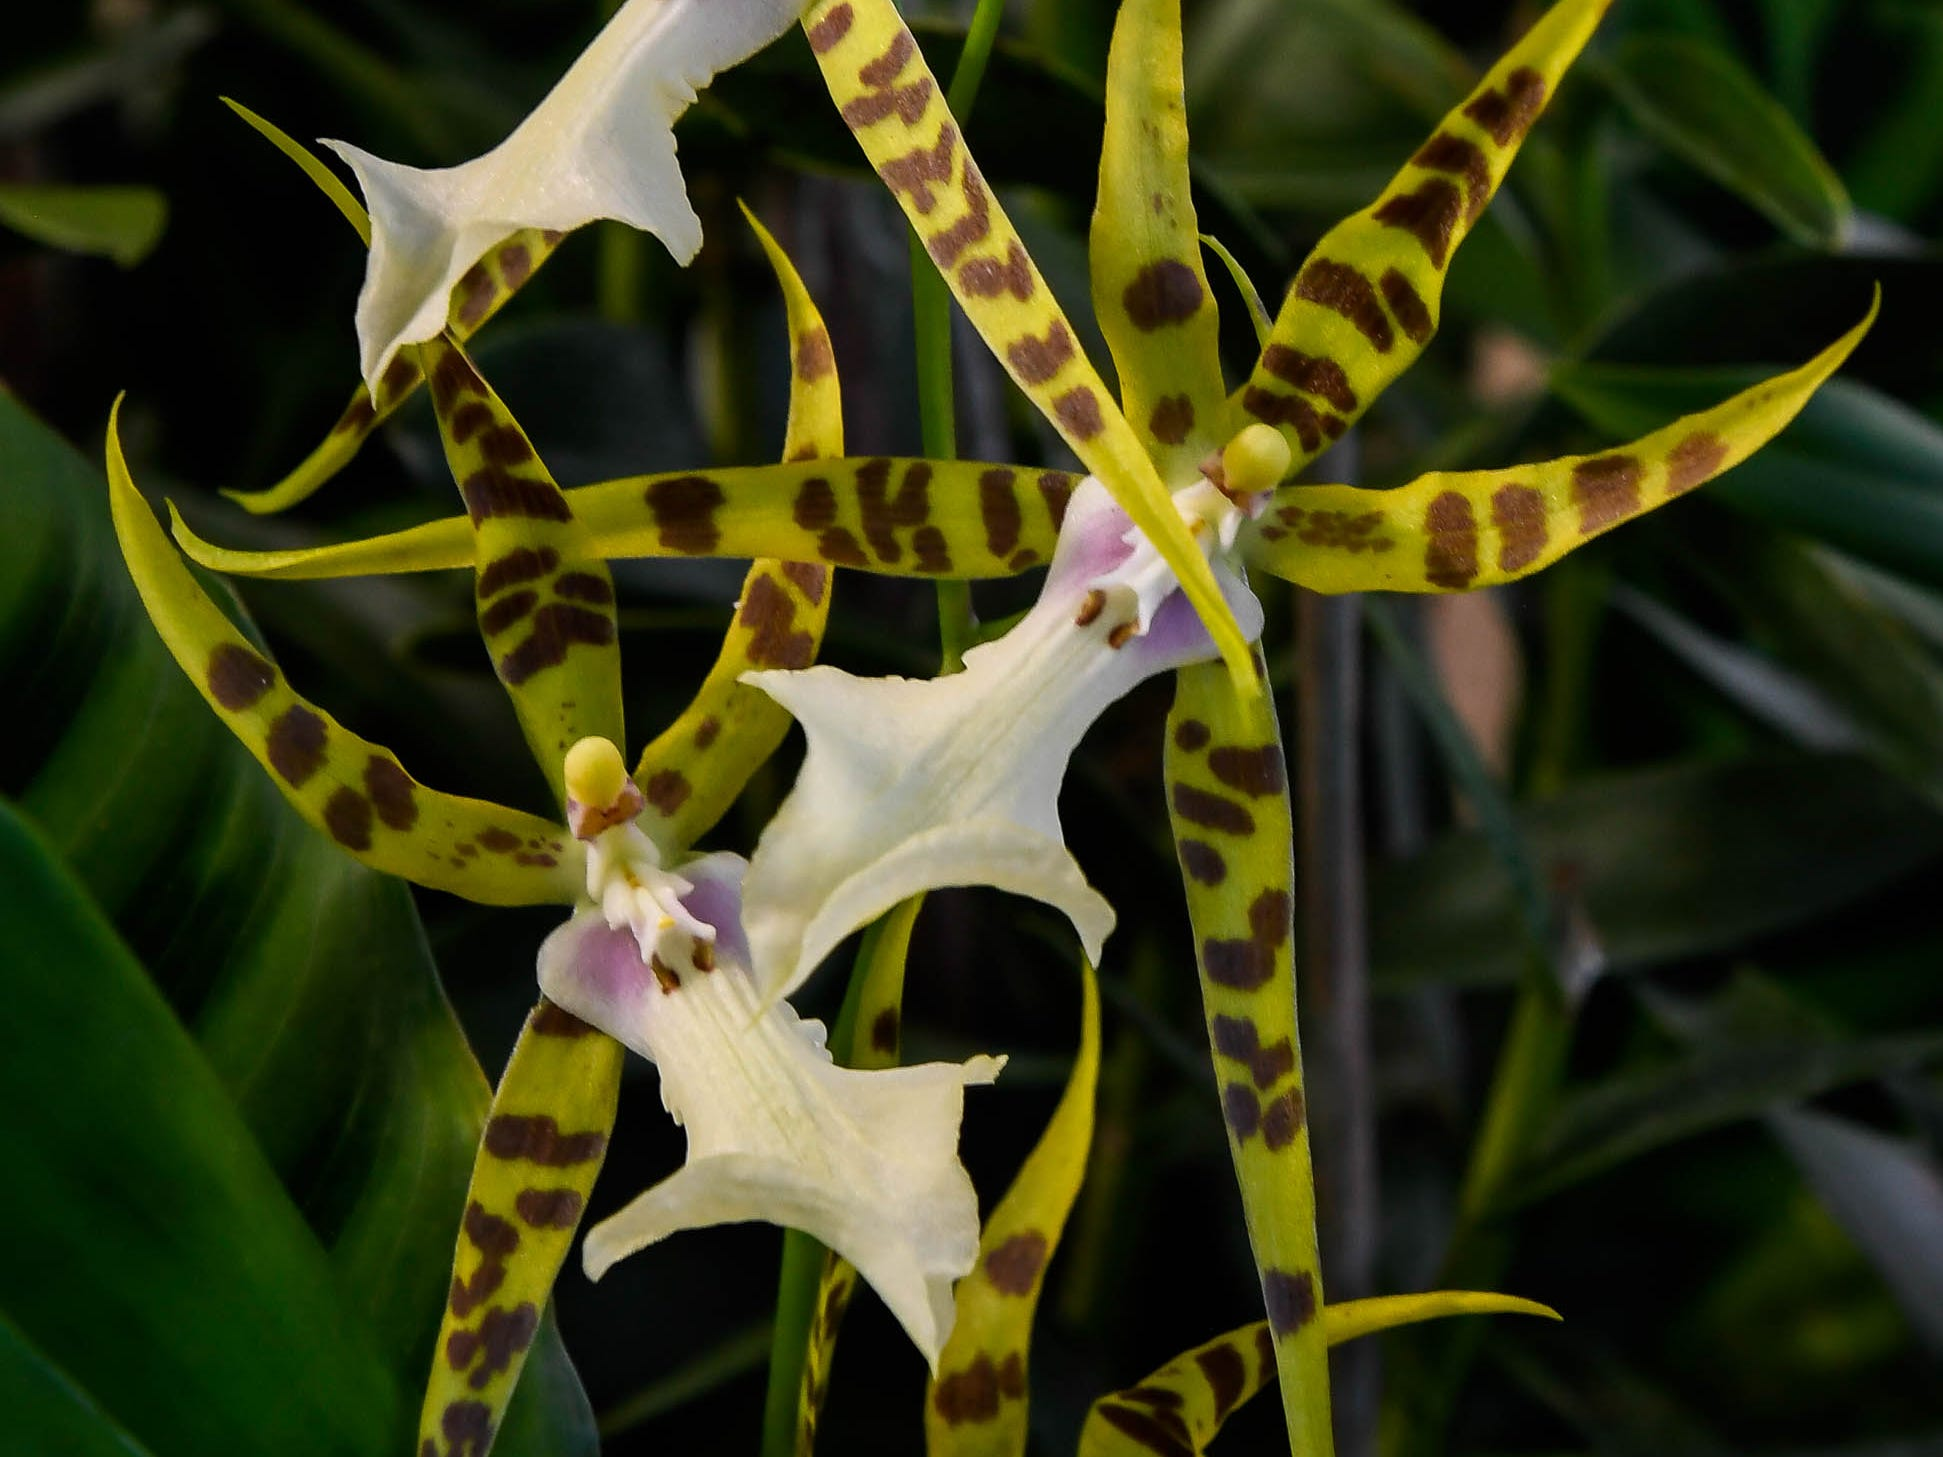 Spider Orchid on display in the Amazonia exhibit at Evansville's Mesker Park Zoo Friday, February 8, 2019.